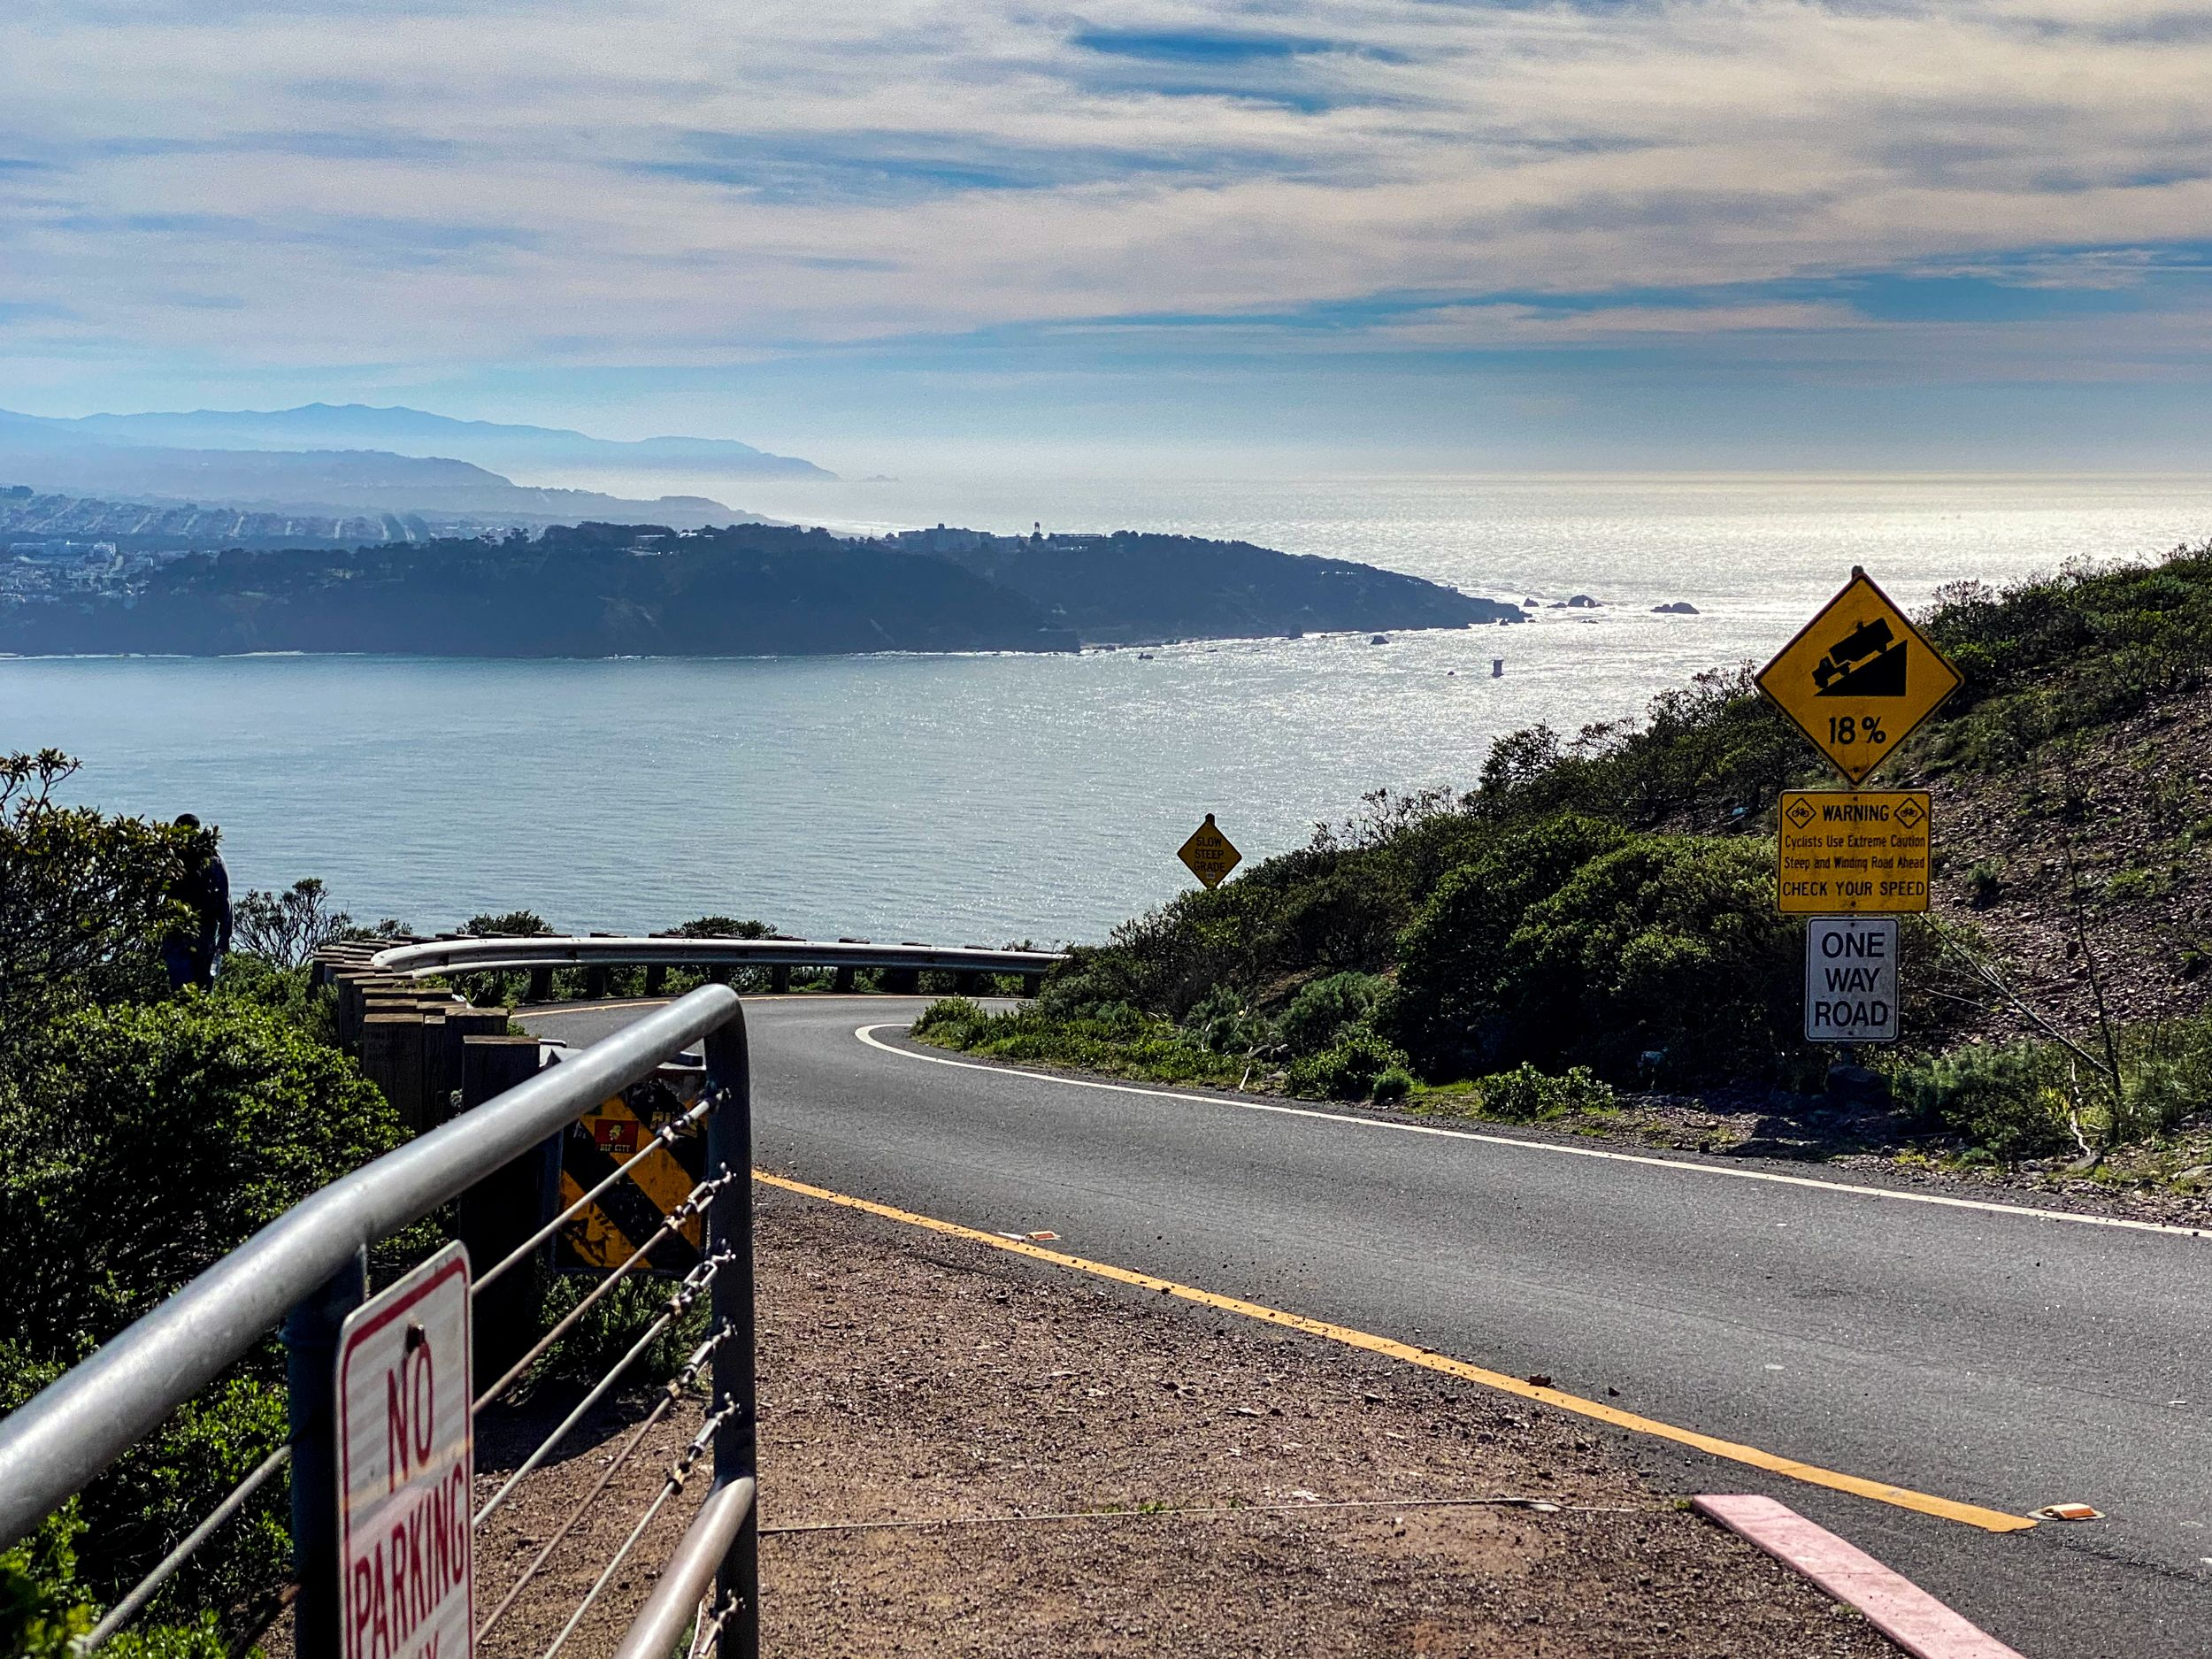 Climbing up to Hawk Hill